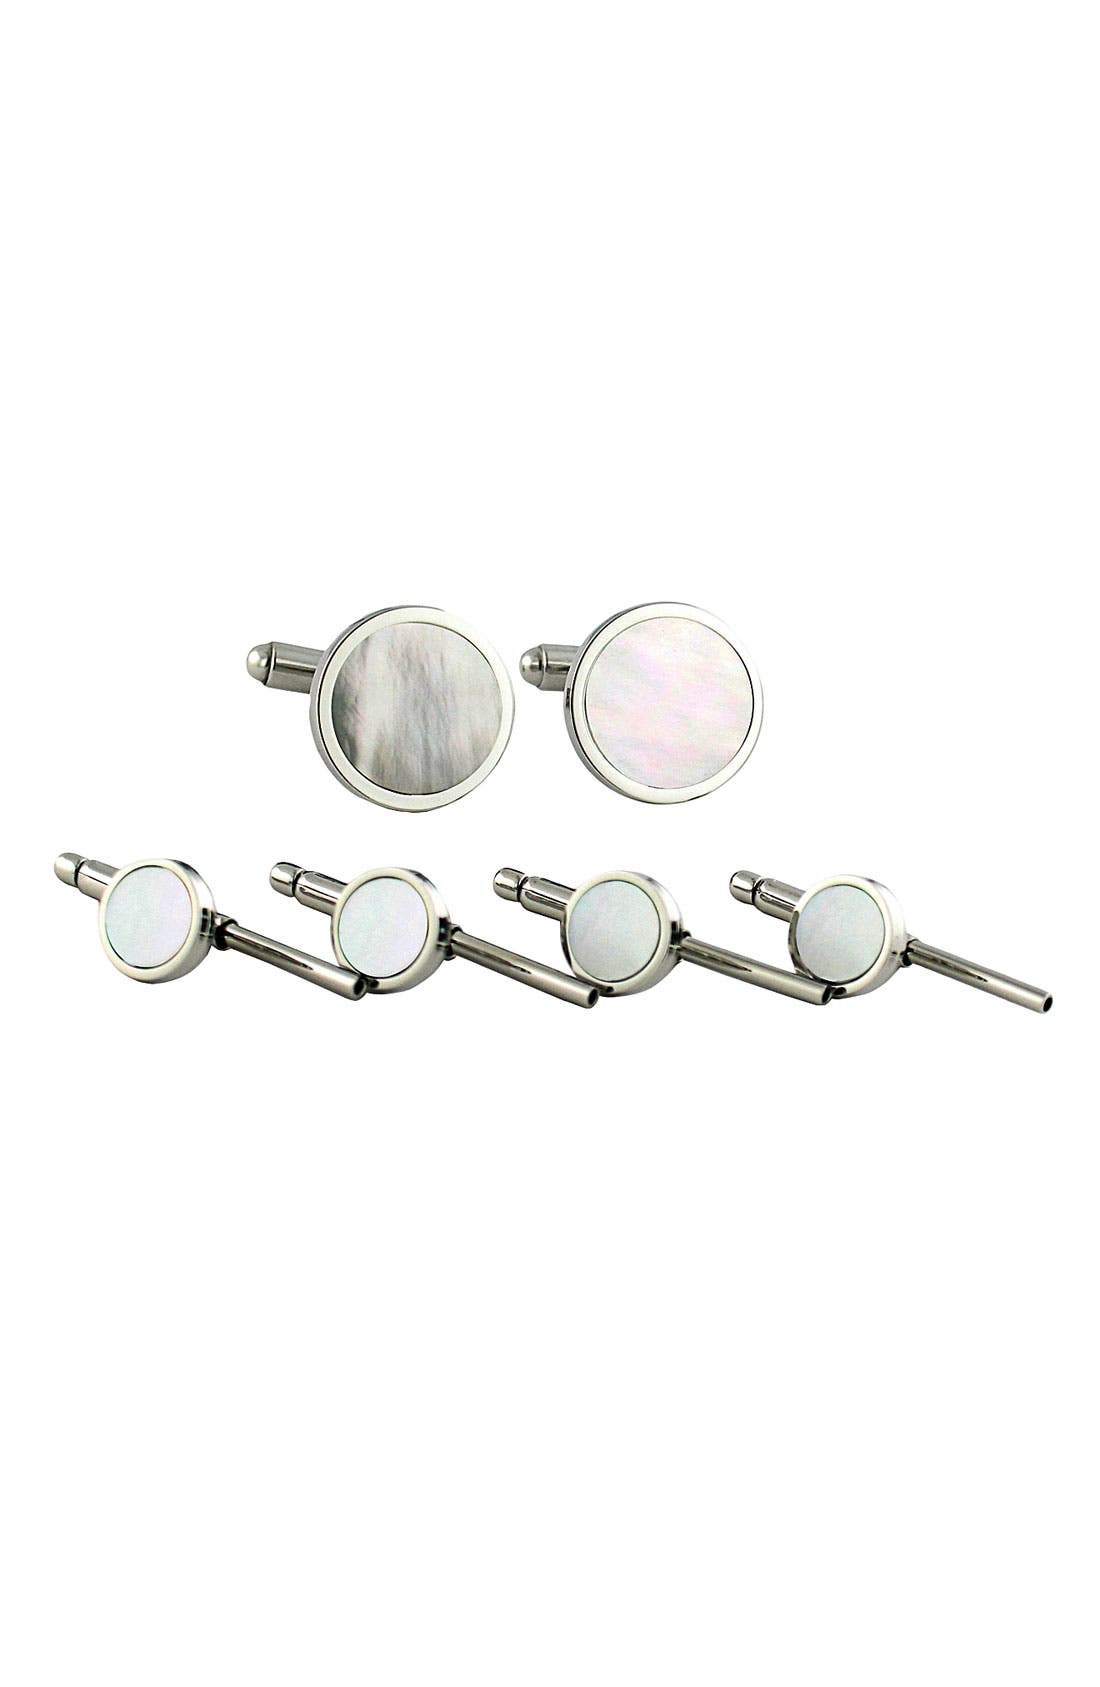 Main Image - David Donahue Mother-of-Pearl Cuff Link & Stud Set